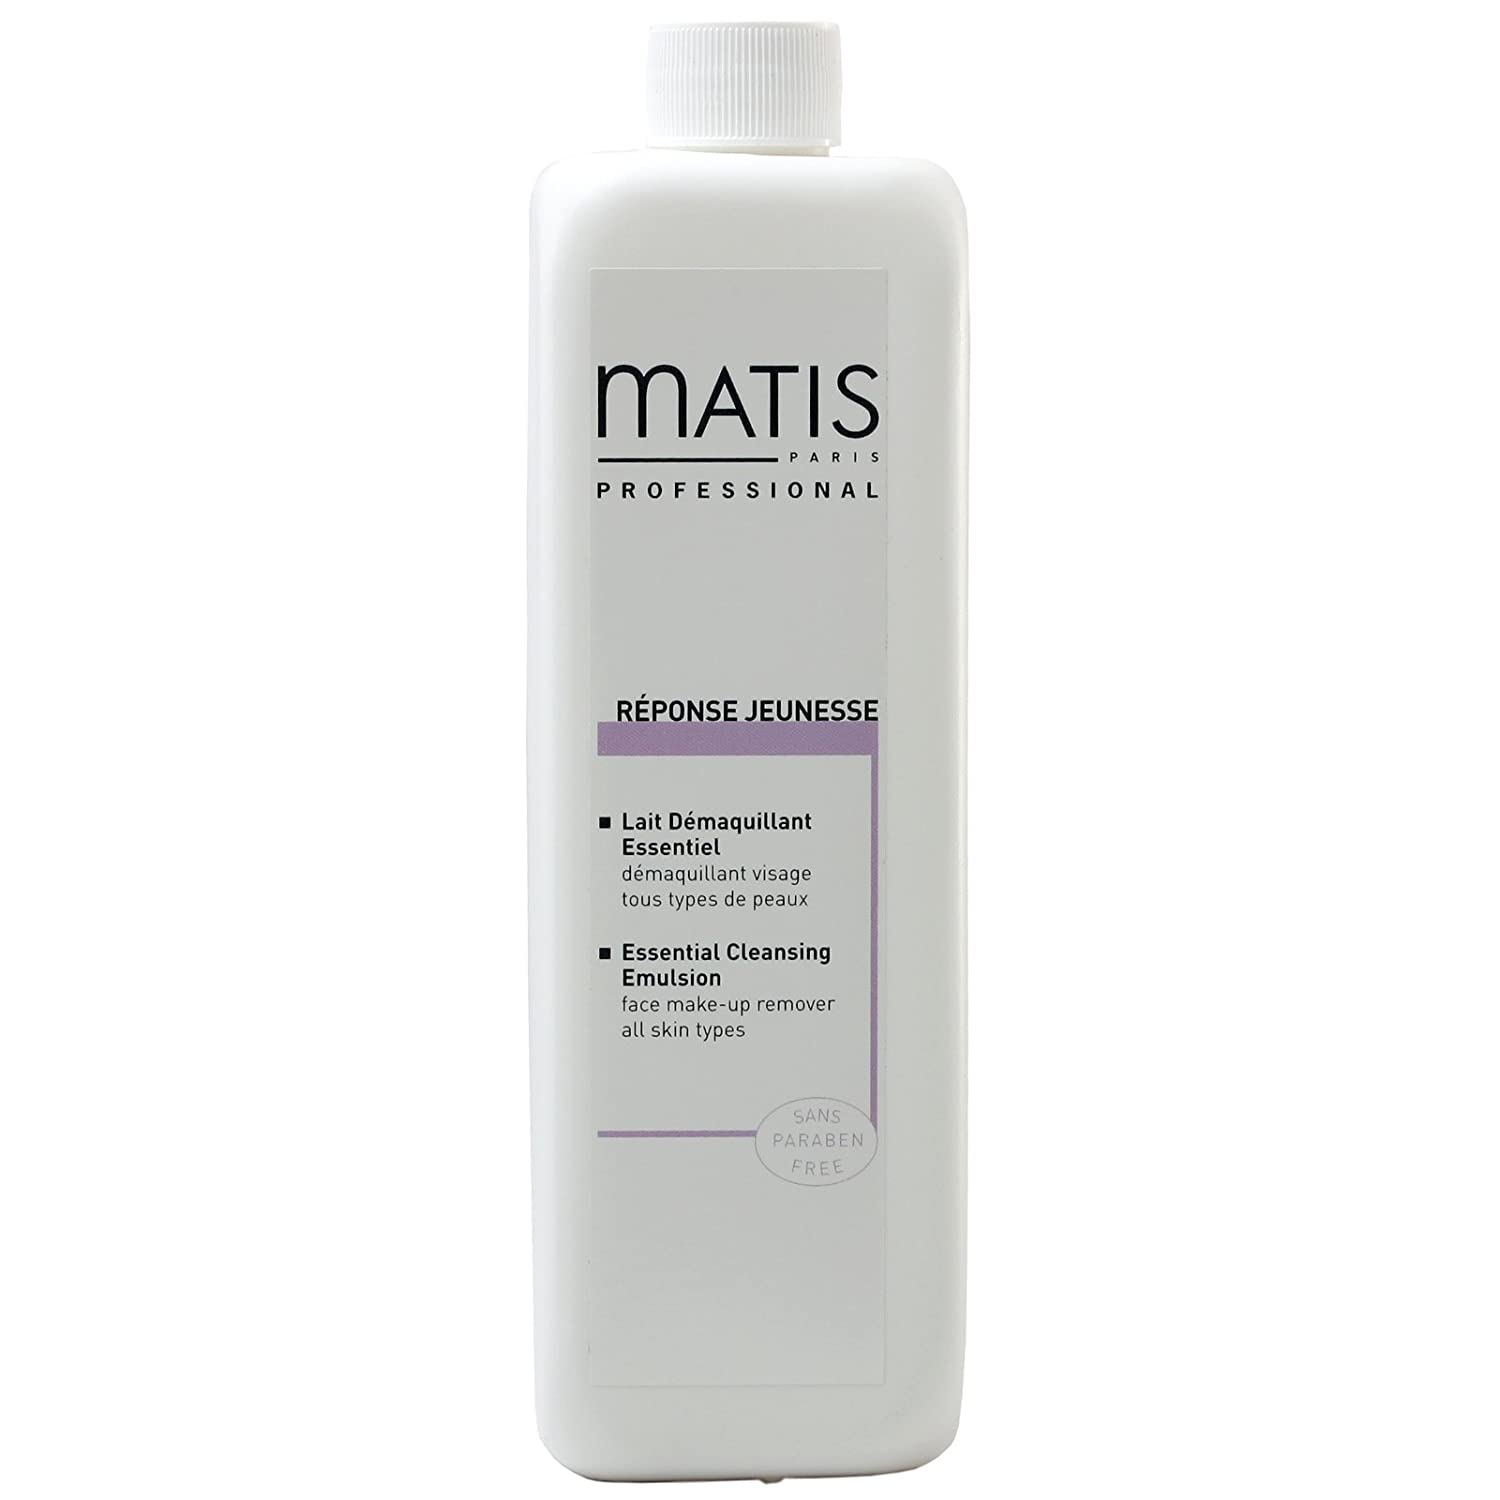 Matis Reponse Jeunesse Essential Cleansing Emulsion 500ml/16.9oz (Salon Size)